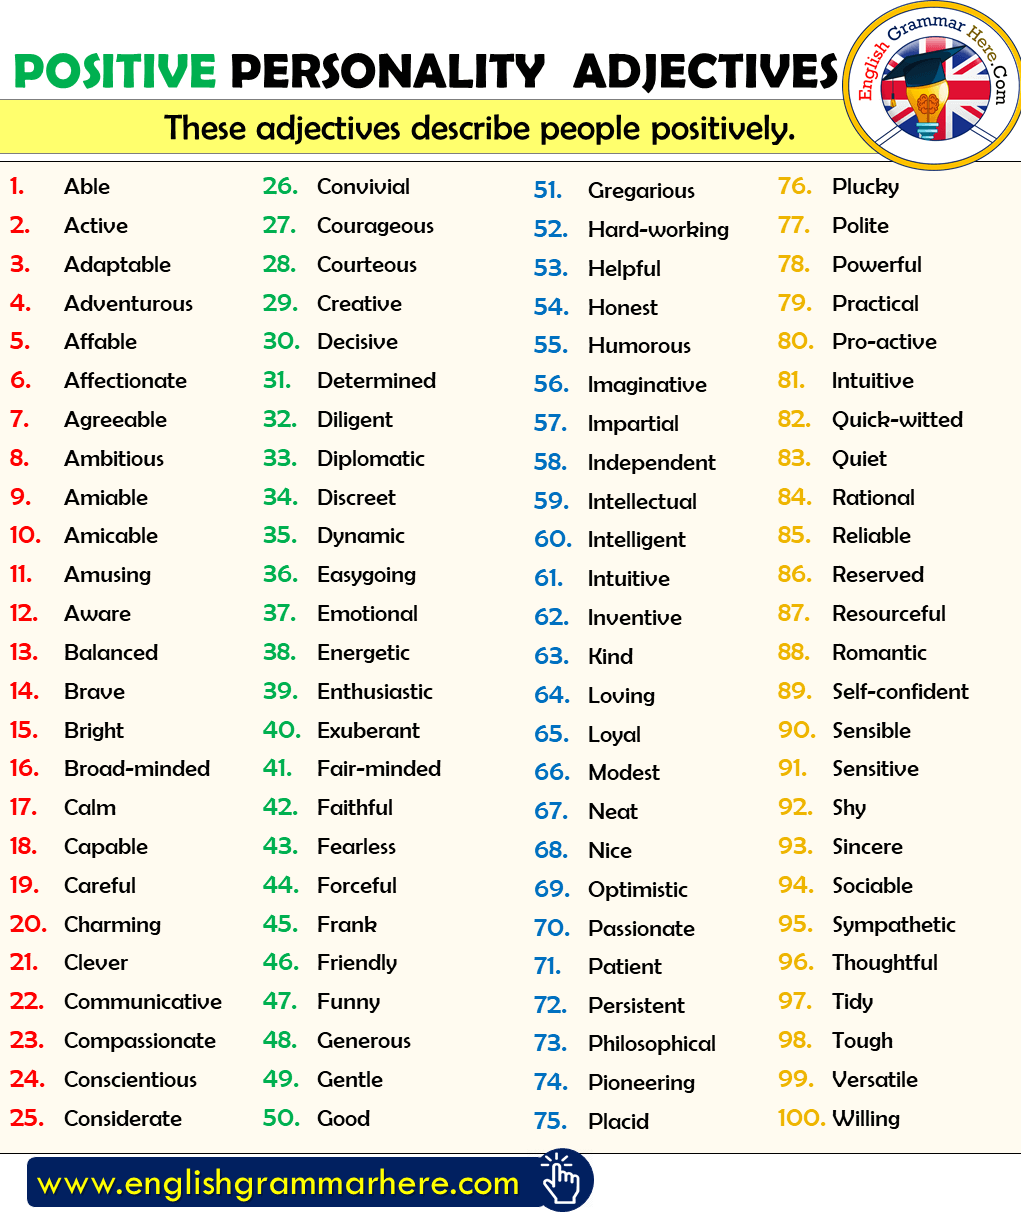 Positive Personality Adjectives List in English